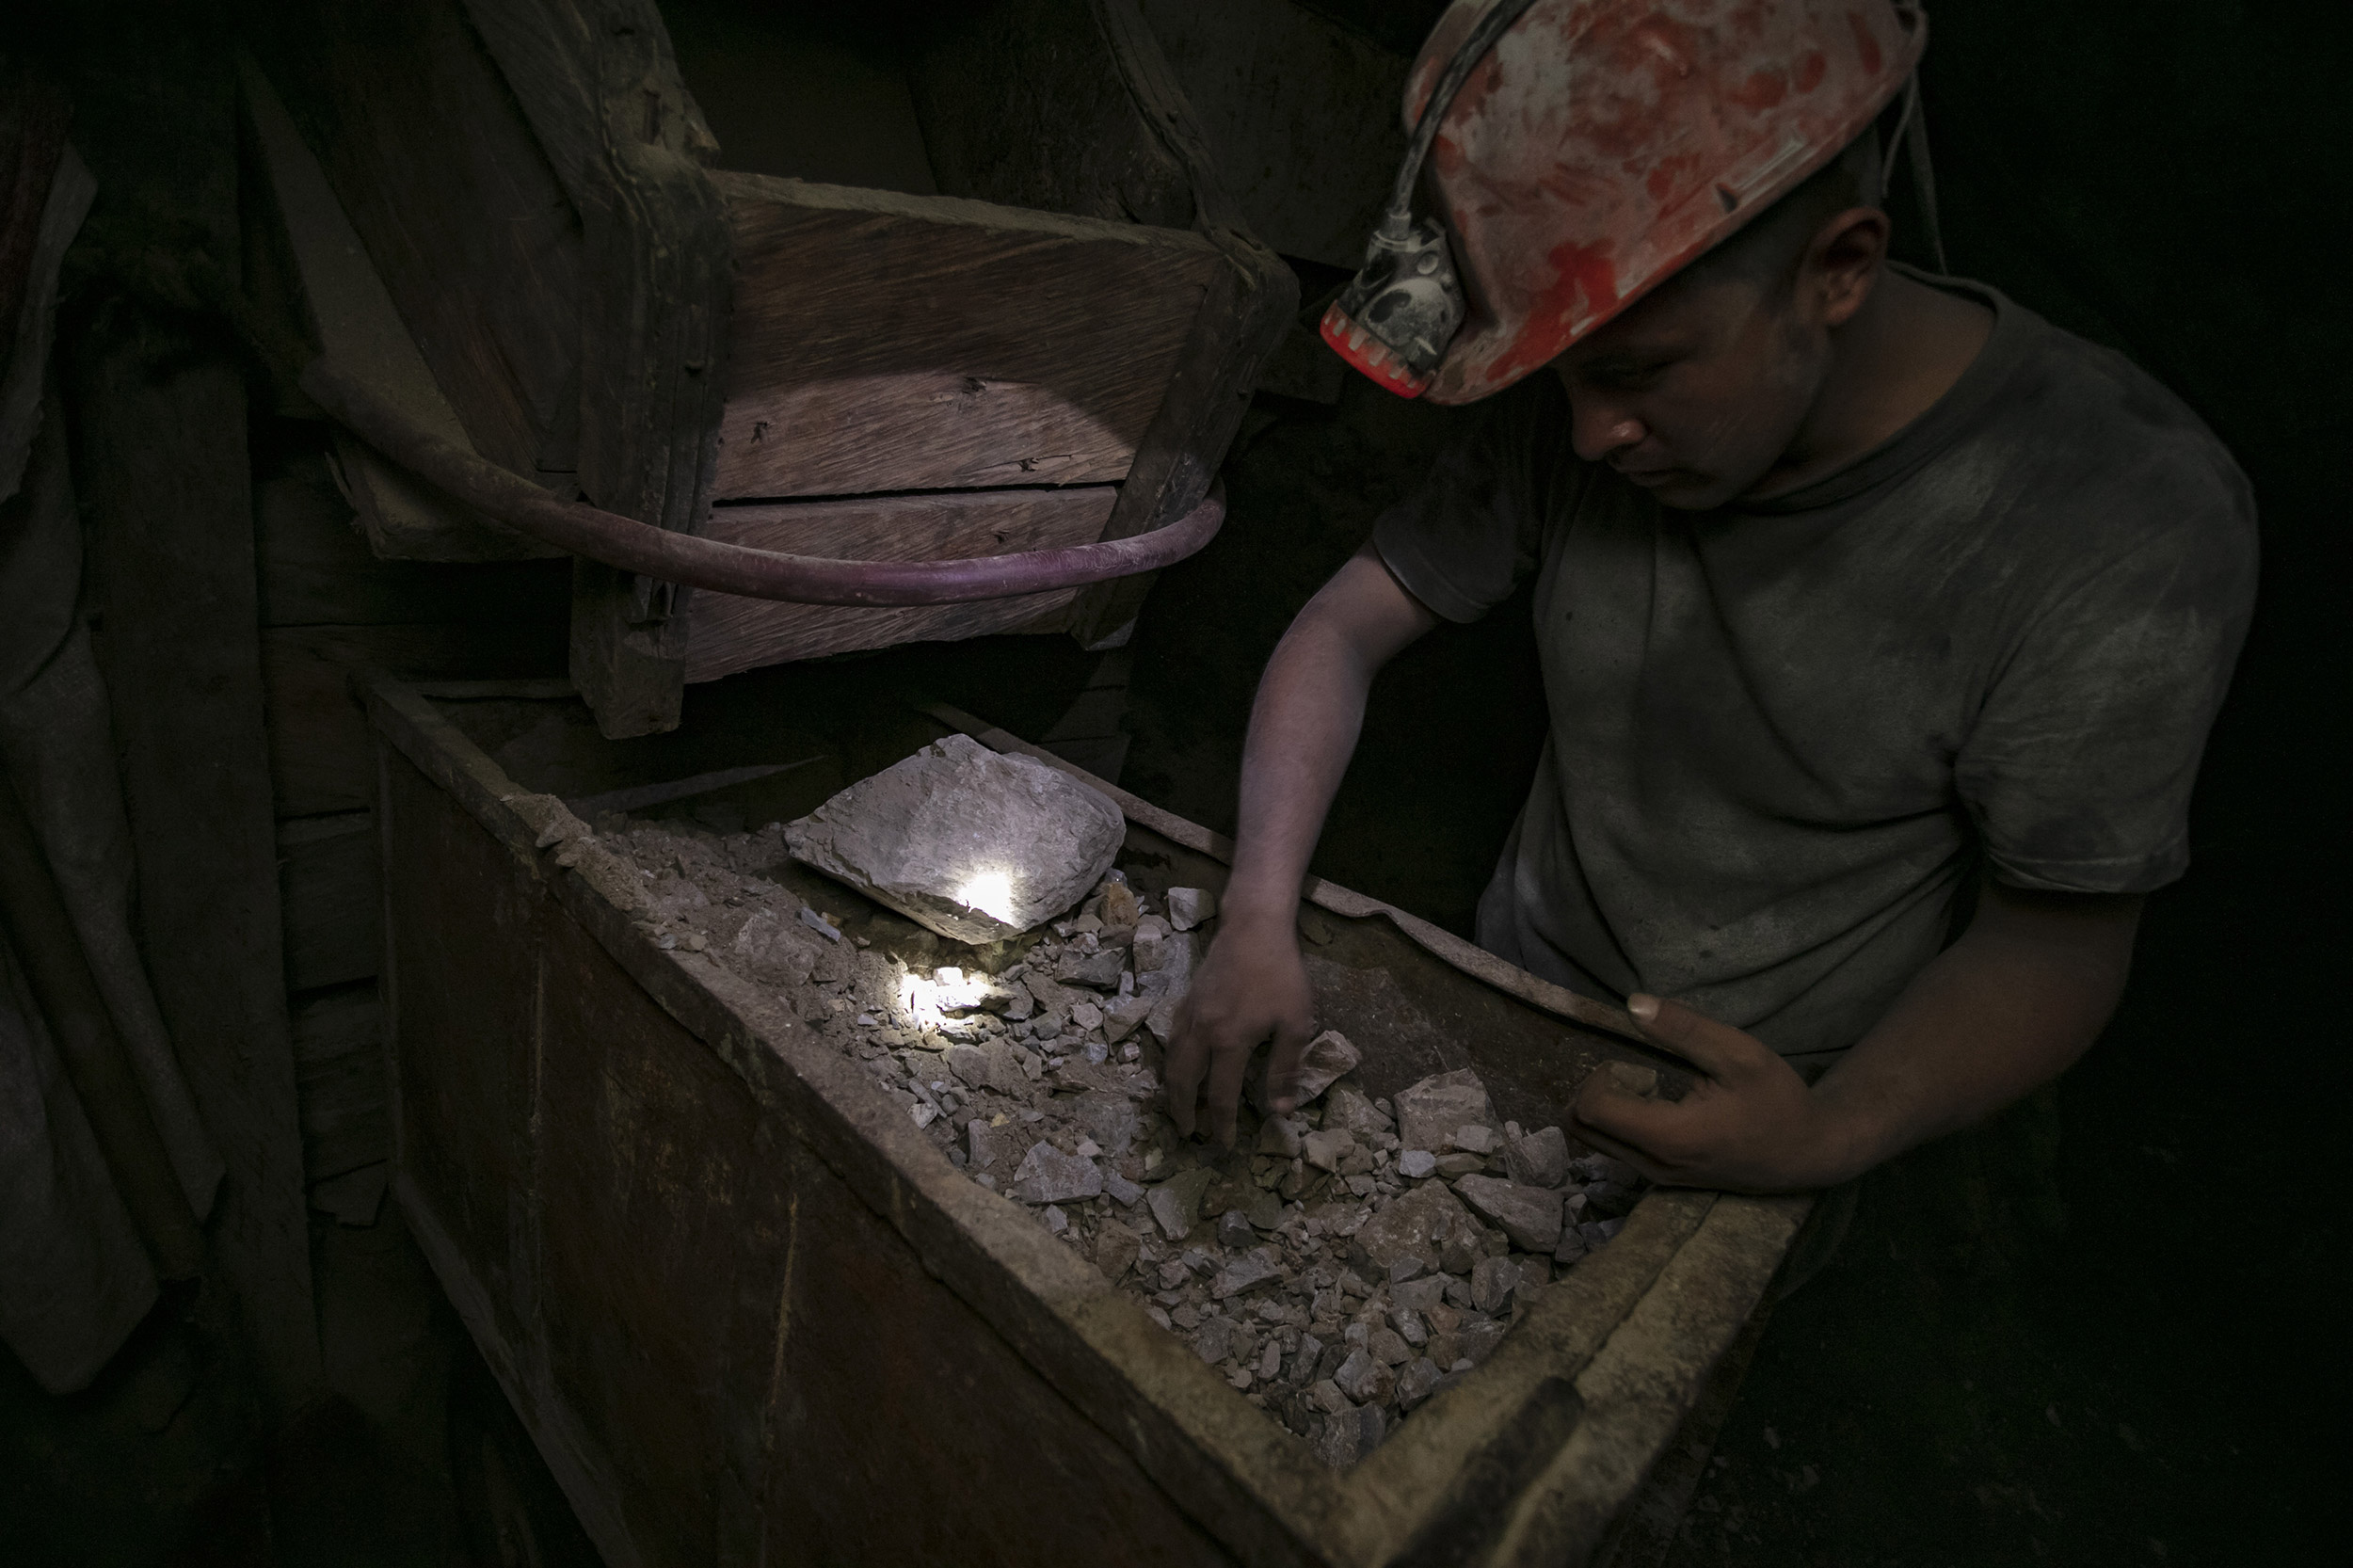 Emerald Mining in Colombia | Plan South America